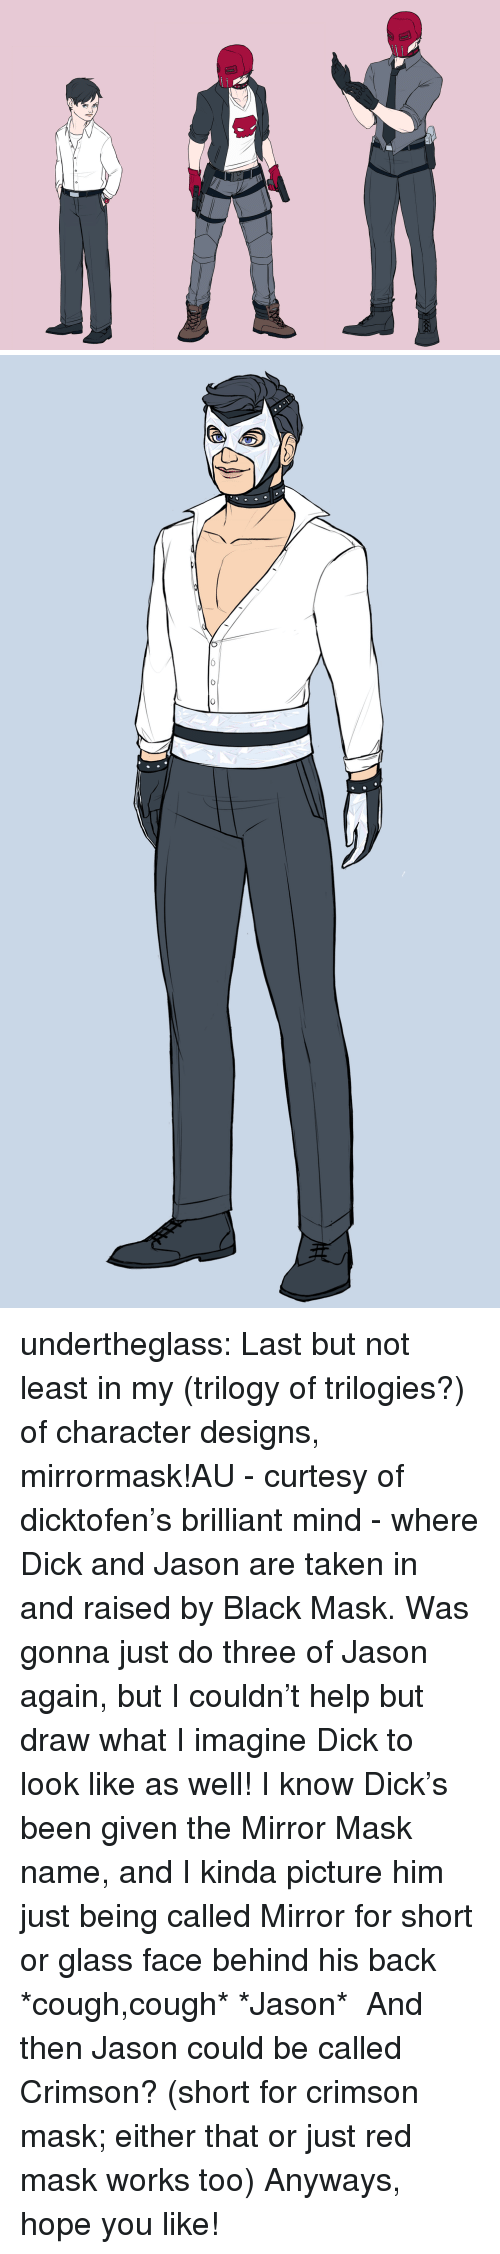 Last But Not Least: undertheglass:  Last but not least in my (trilogy of trilogies?) of character designs, mirrormask!AU - curtesy of dicktofen's brilliant mind - where Dick and Jason are taken in and raised by Black Mask. Was gonna just do three of Jason again, but I couldn't help but draw what I imagine Dick to look like as well! I know Dick's been given the Mirror Mask name, and I kinda picture him just being called Mirror for short or glass face behind his back *cough,cough* *Jason* And then Jason could be called Crimson? (short for crimson mask; either that or just red mask works too) Anyways, hope you like!